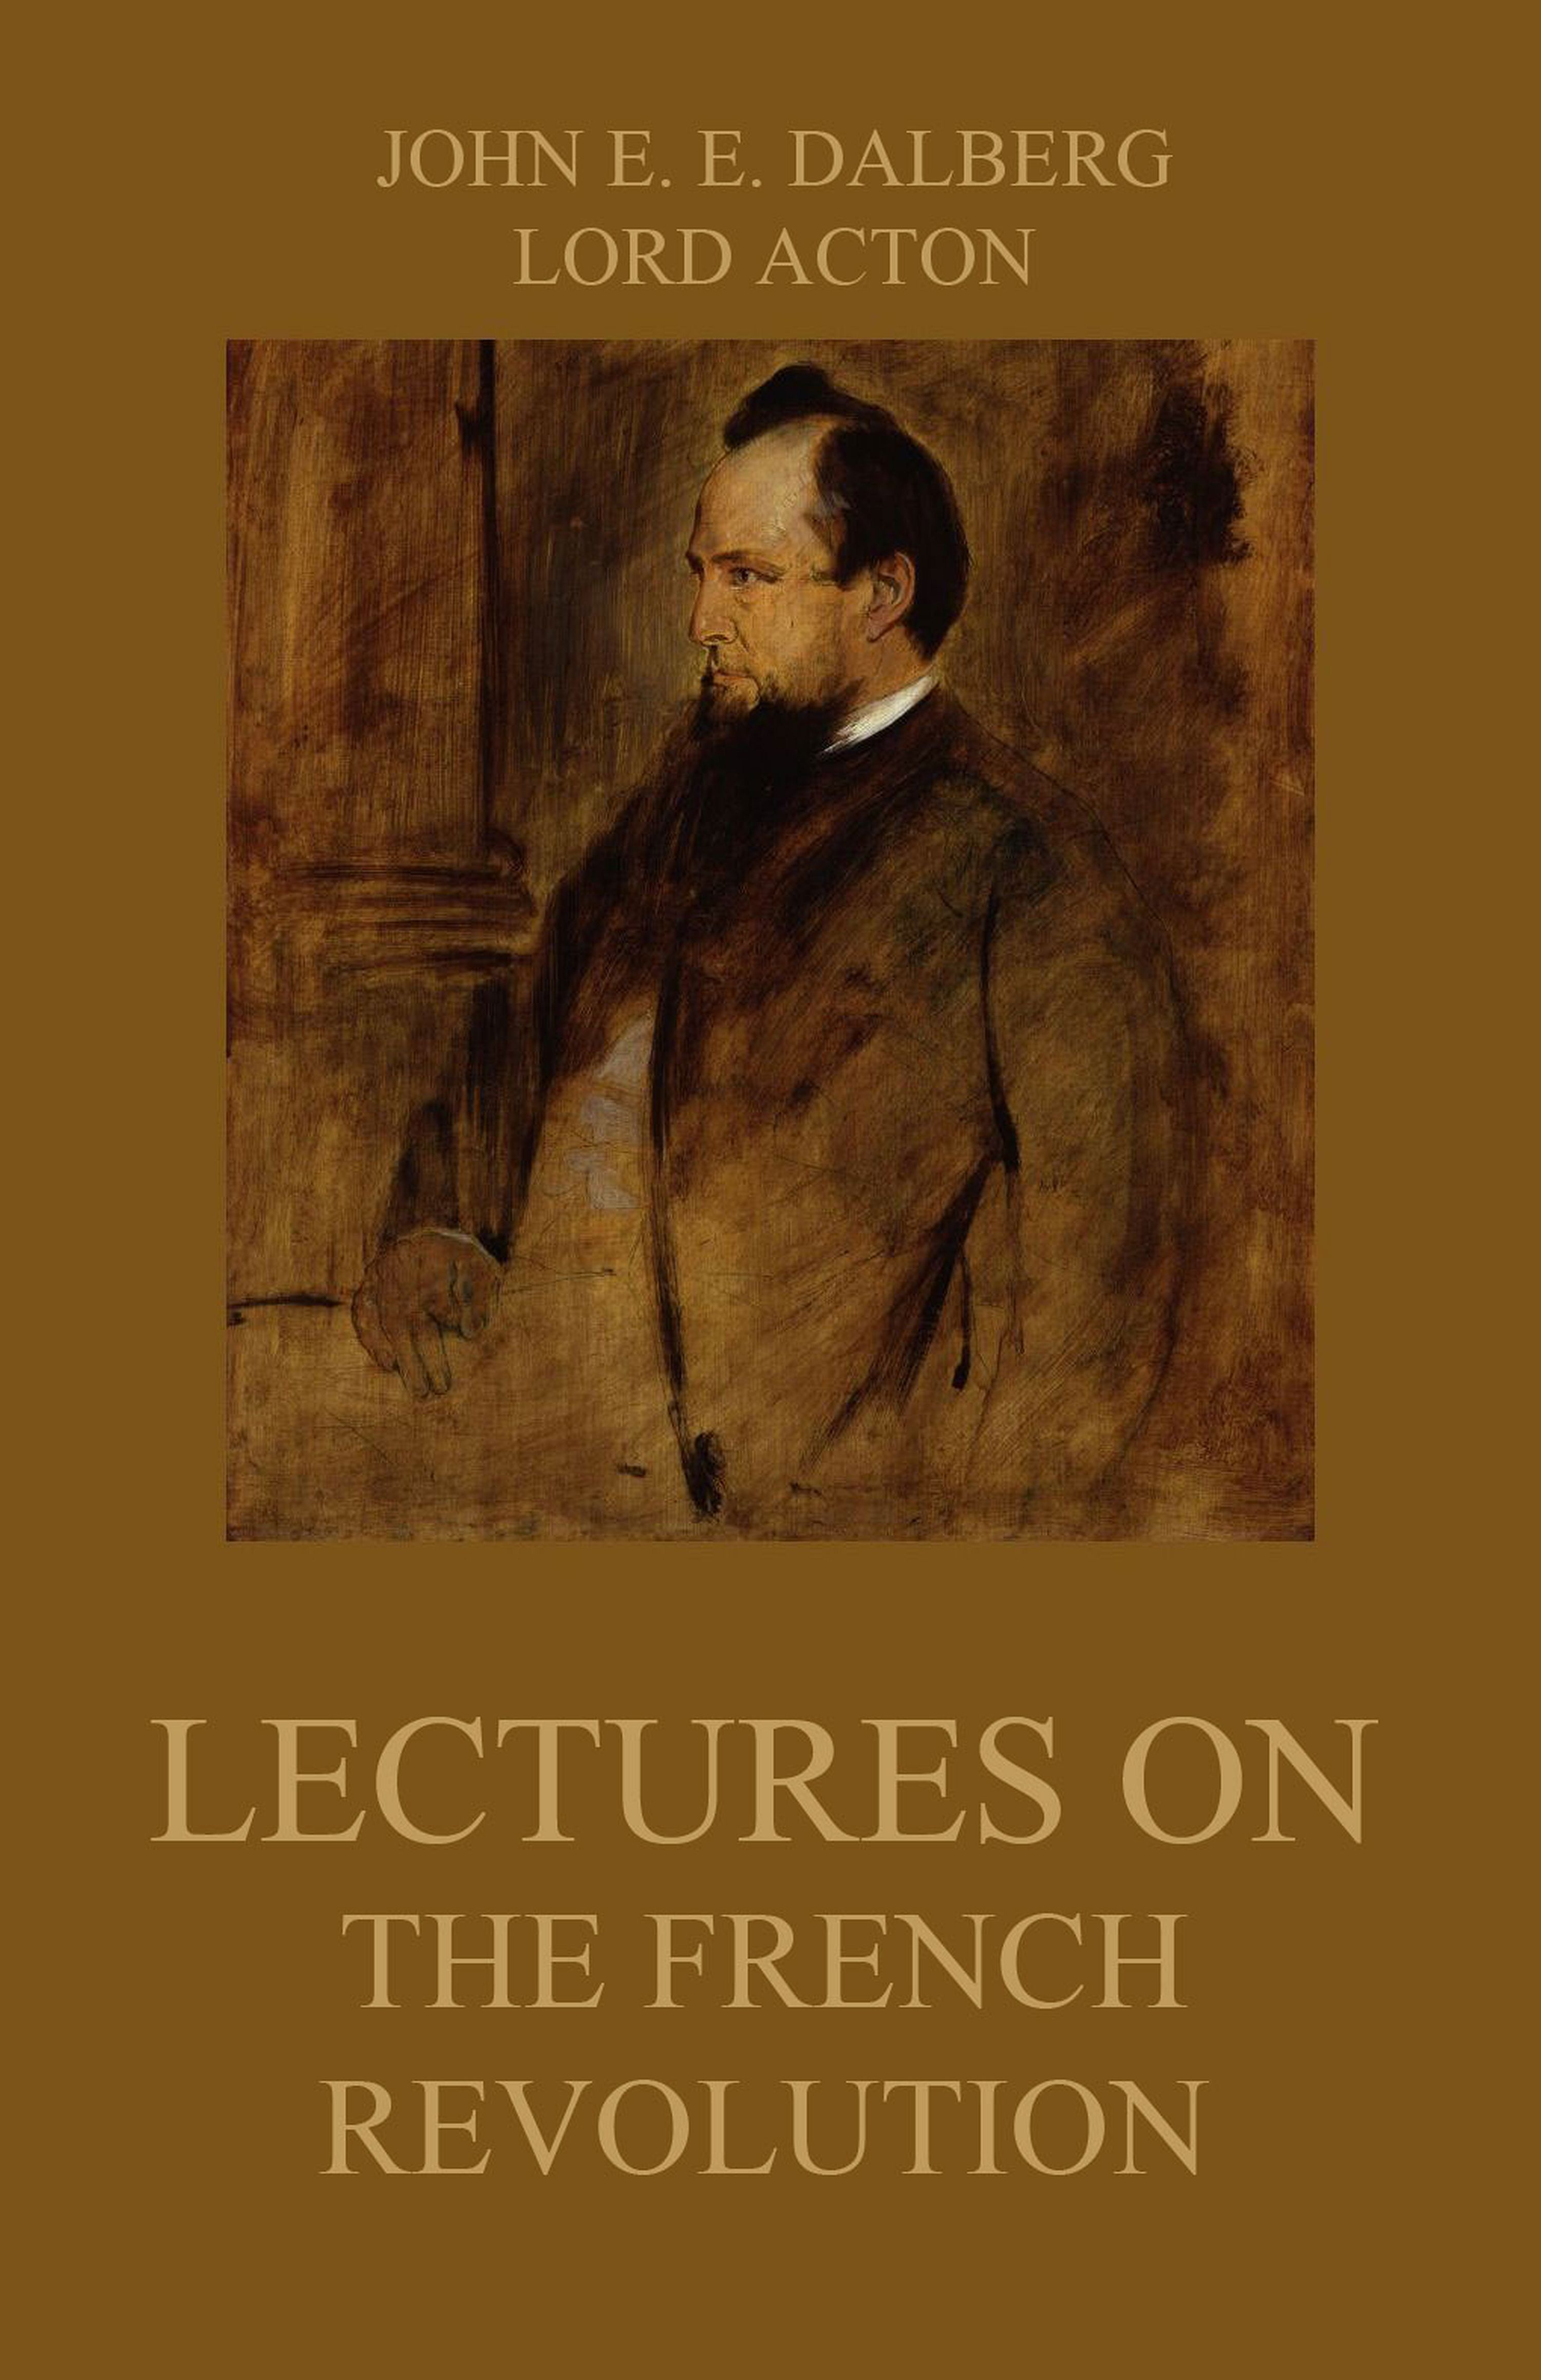 Lord Acton Lectures on the French Revolution